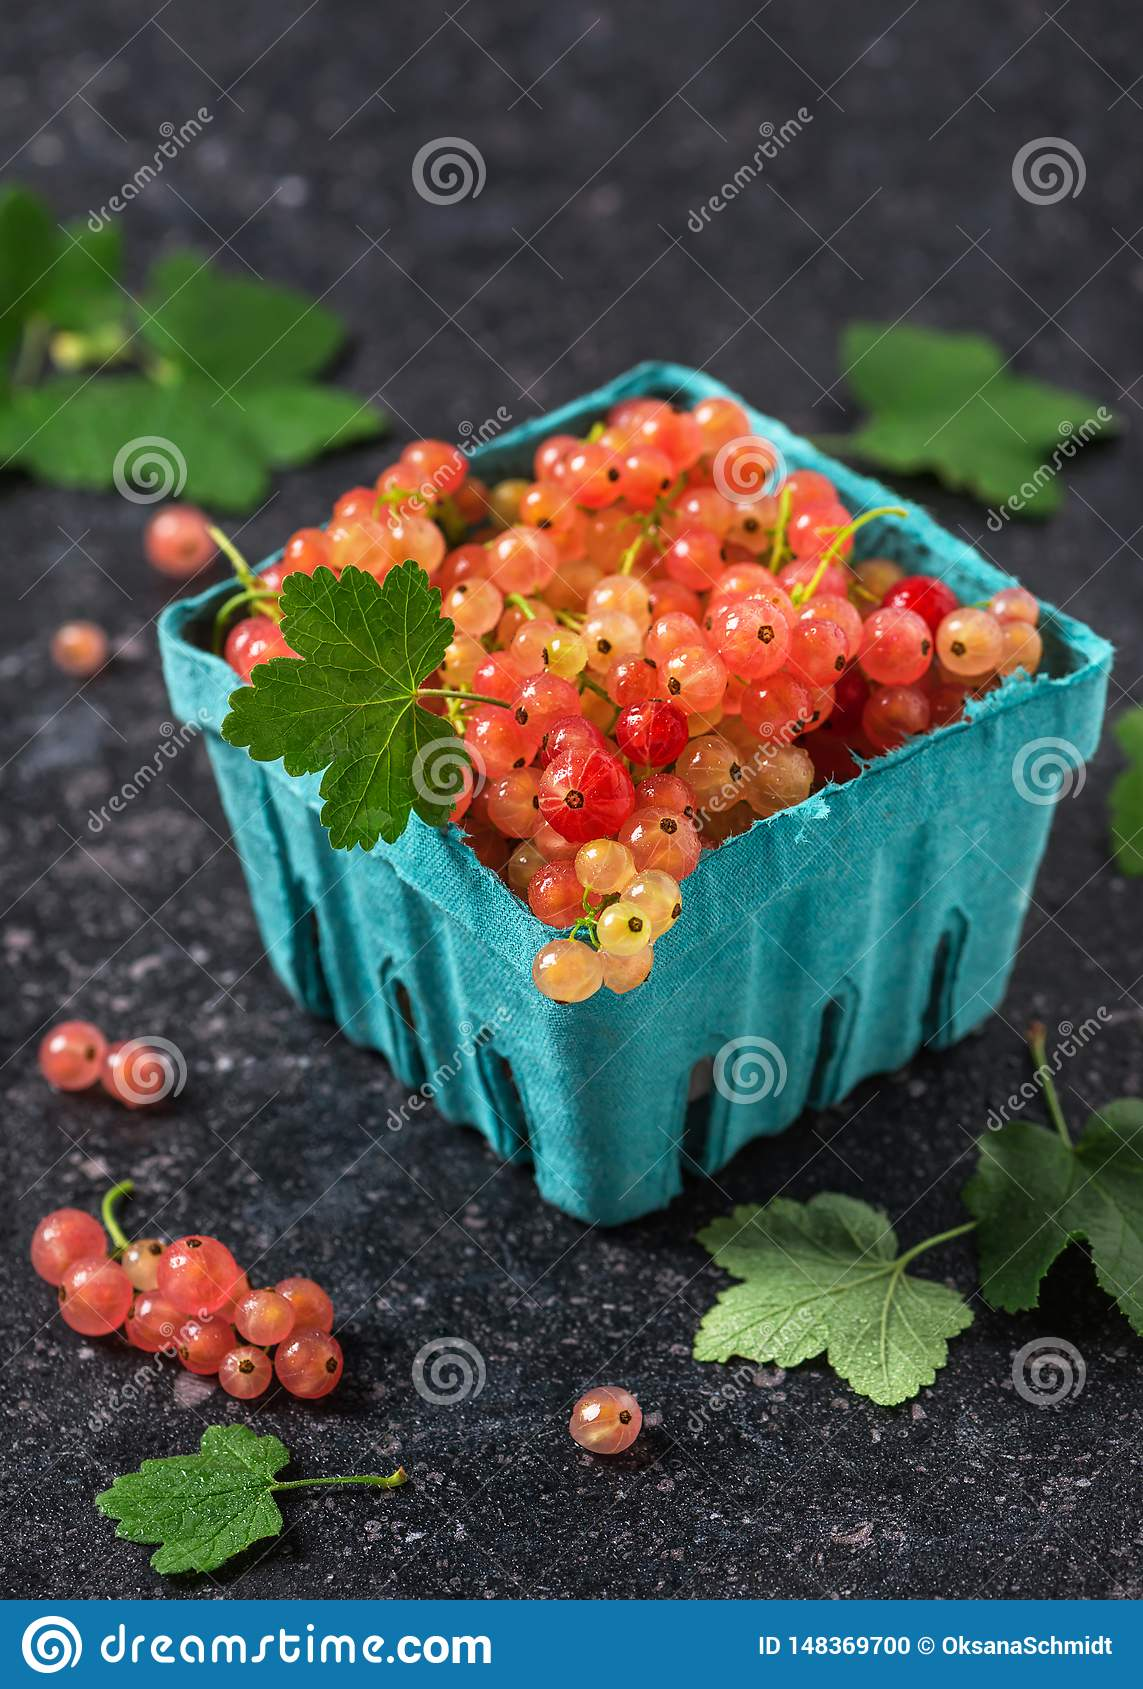 Fresh rosa and white currant berries with water drops in a turquoise cardboard box.